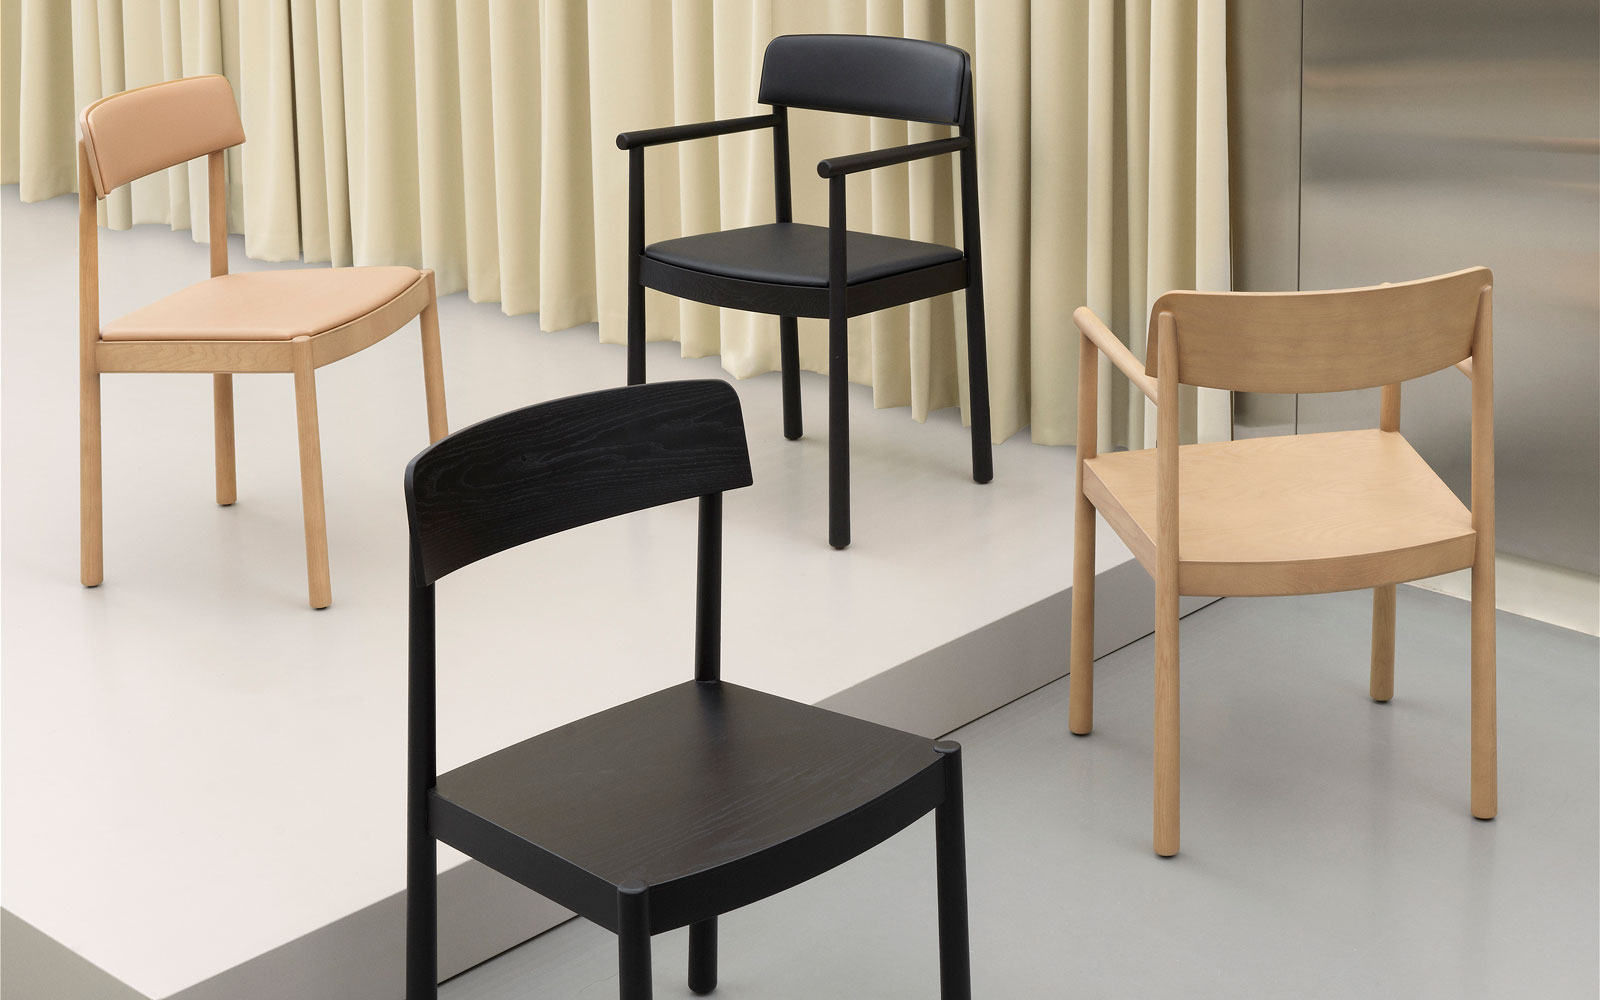 Timb Armchair Black and Tan - Normann Copenhagen